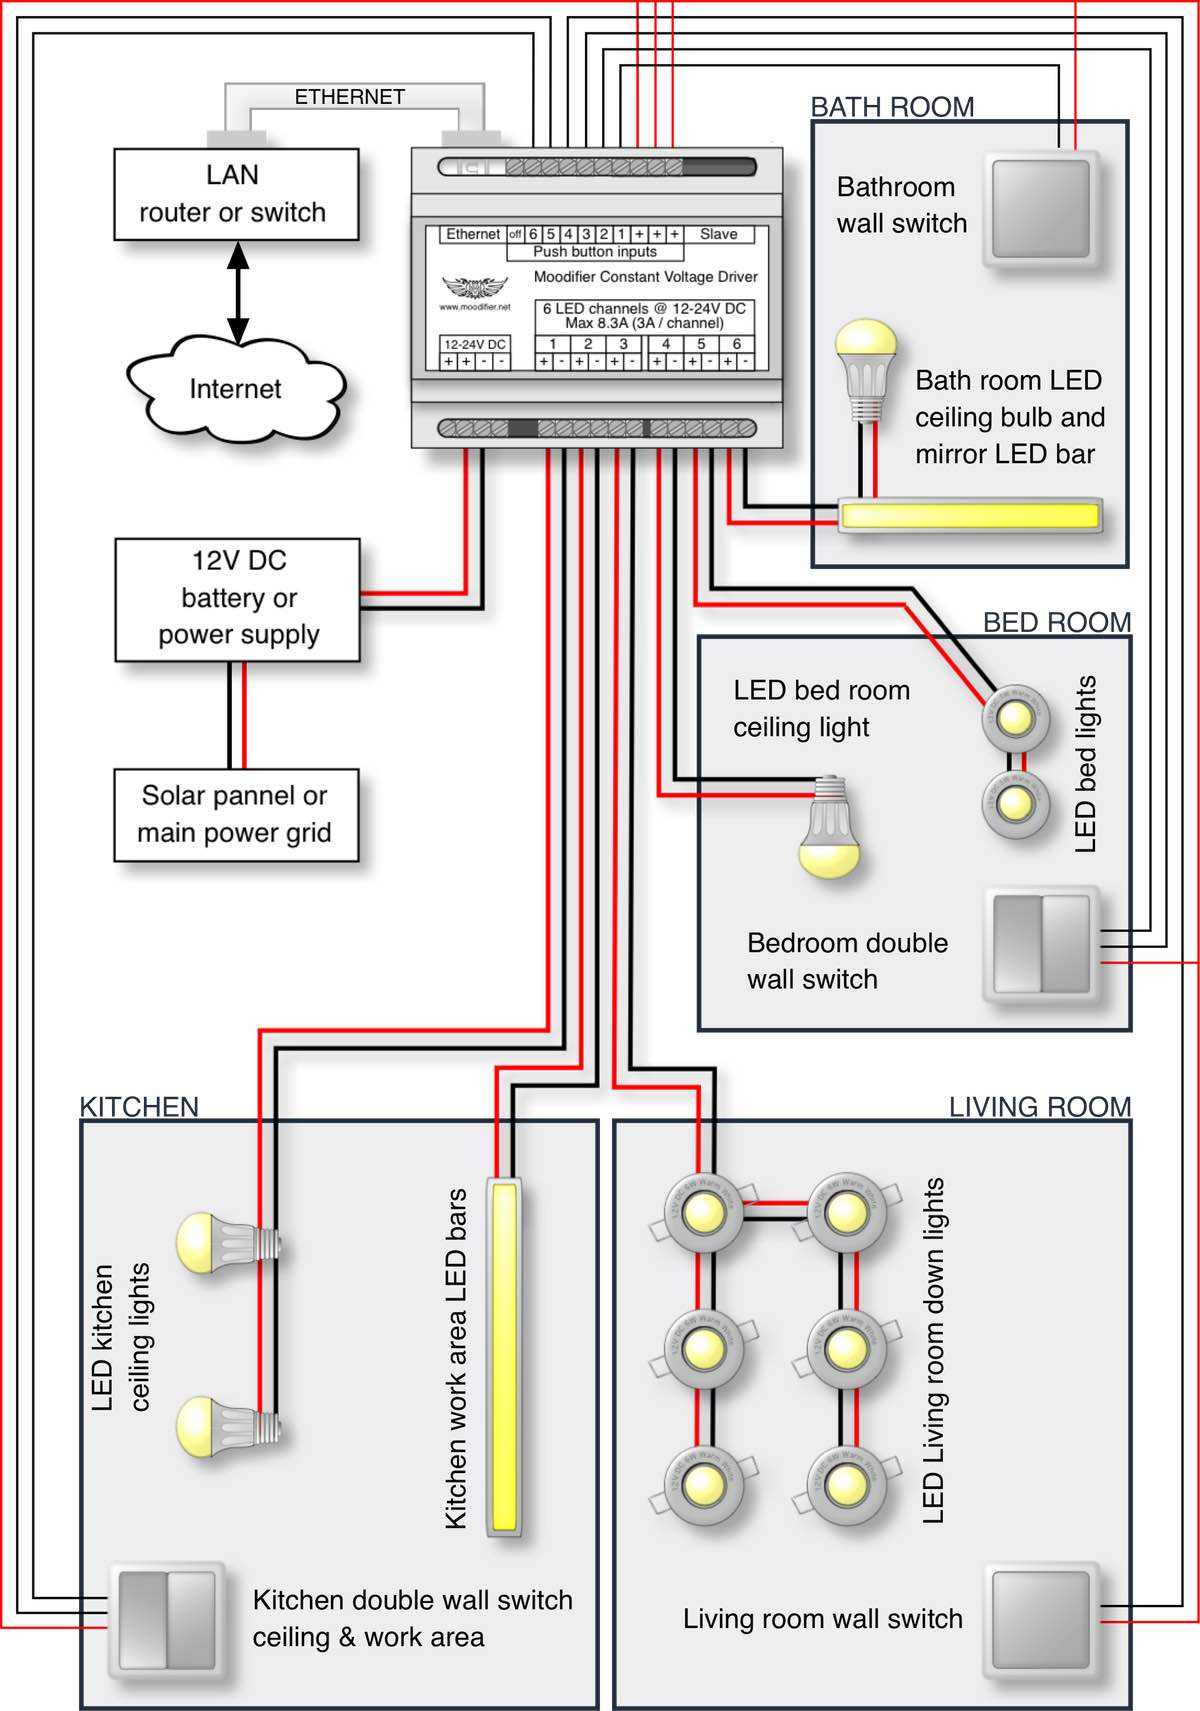 Dc bulb wiring wiring diagram 12 24v dc moodifier led lighting installation white paper 12v dc wiring diagram as you can swarovskicordoba Images